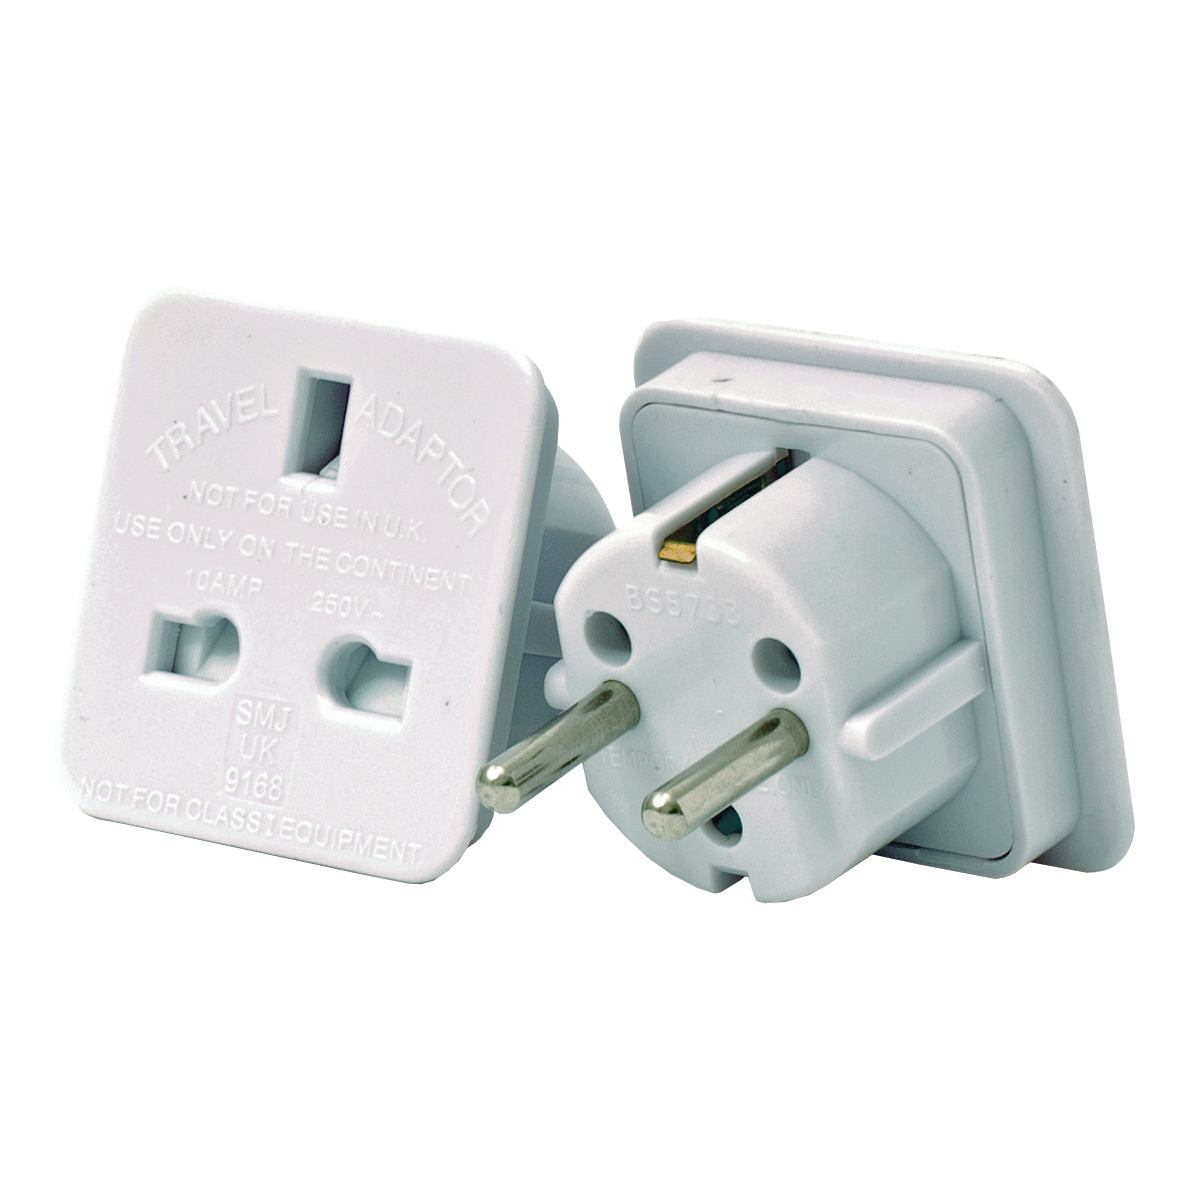 Cables / Leads / Plugs / Fuses UK to European Travel Adaptor Pack 2